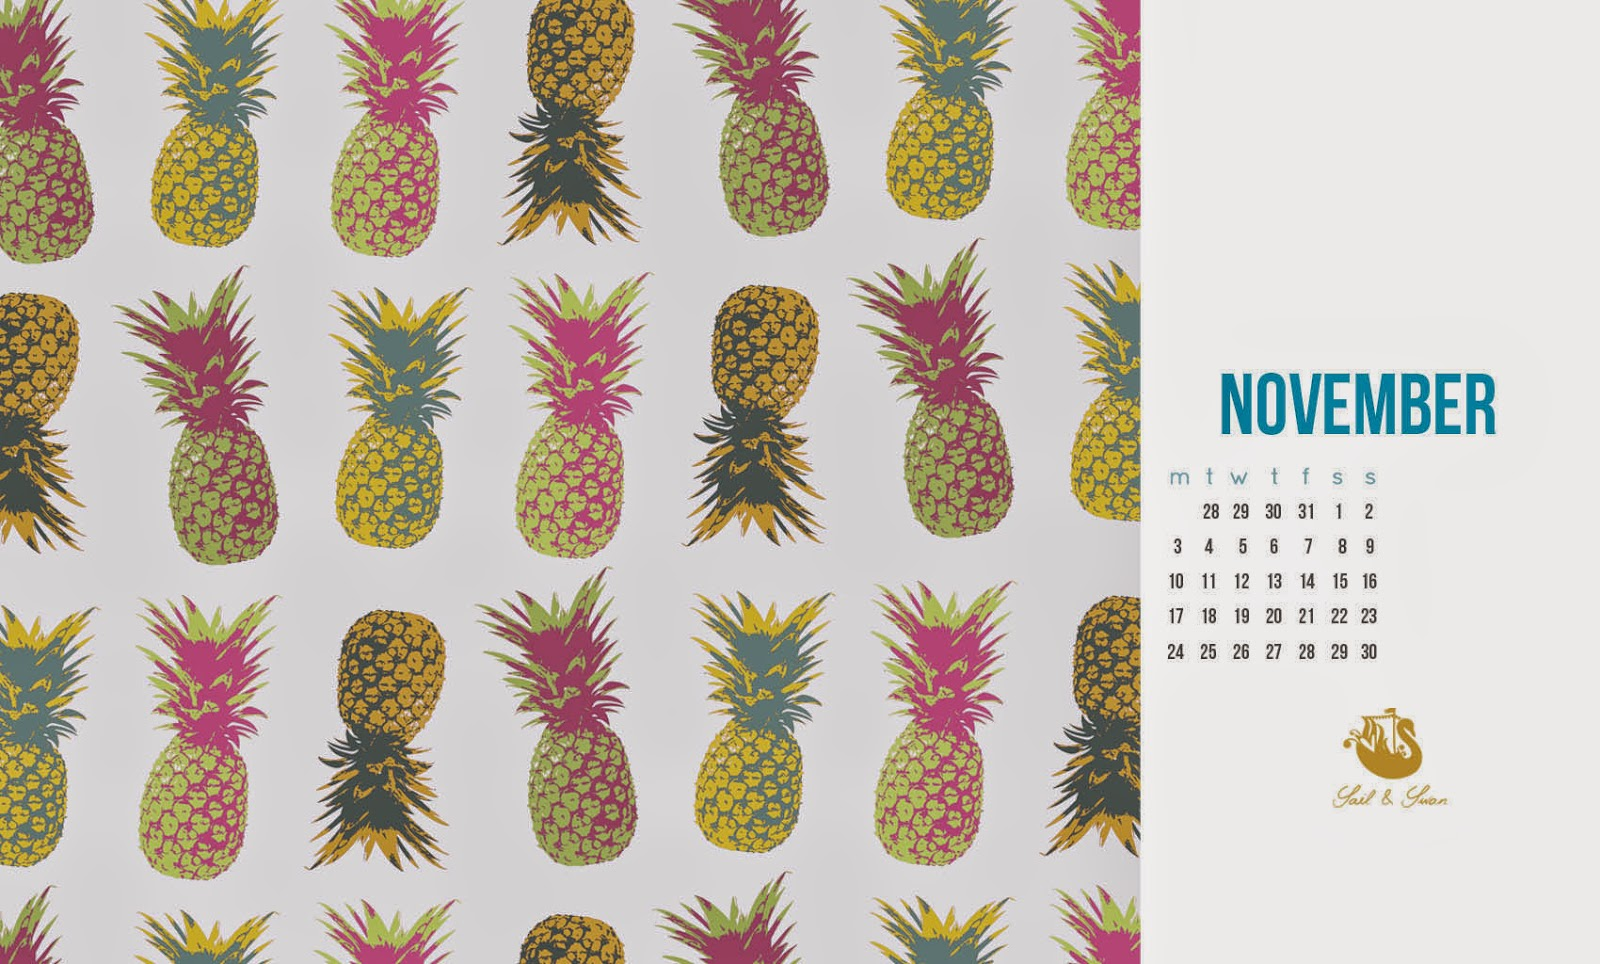 free desktop background pineapple pattern sail and swan